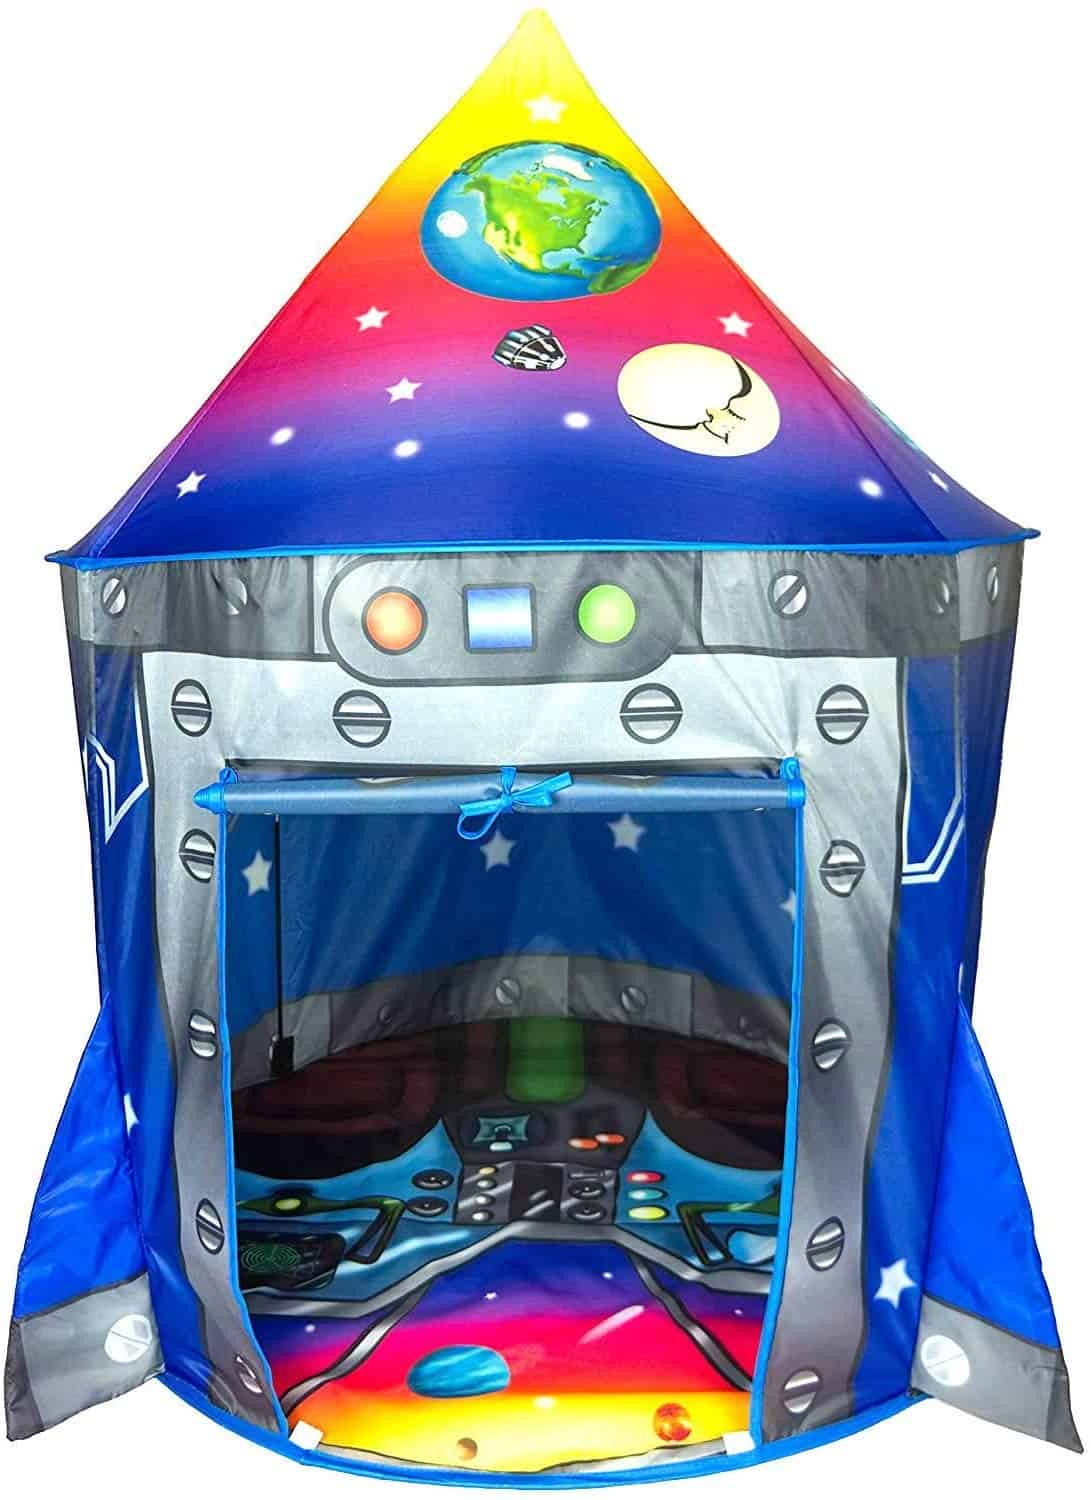 Rocket Ship Play Tent Playhouse by Imagenius Toys